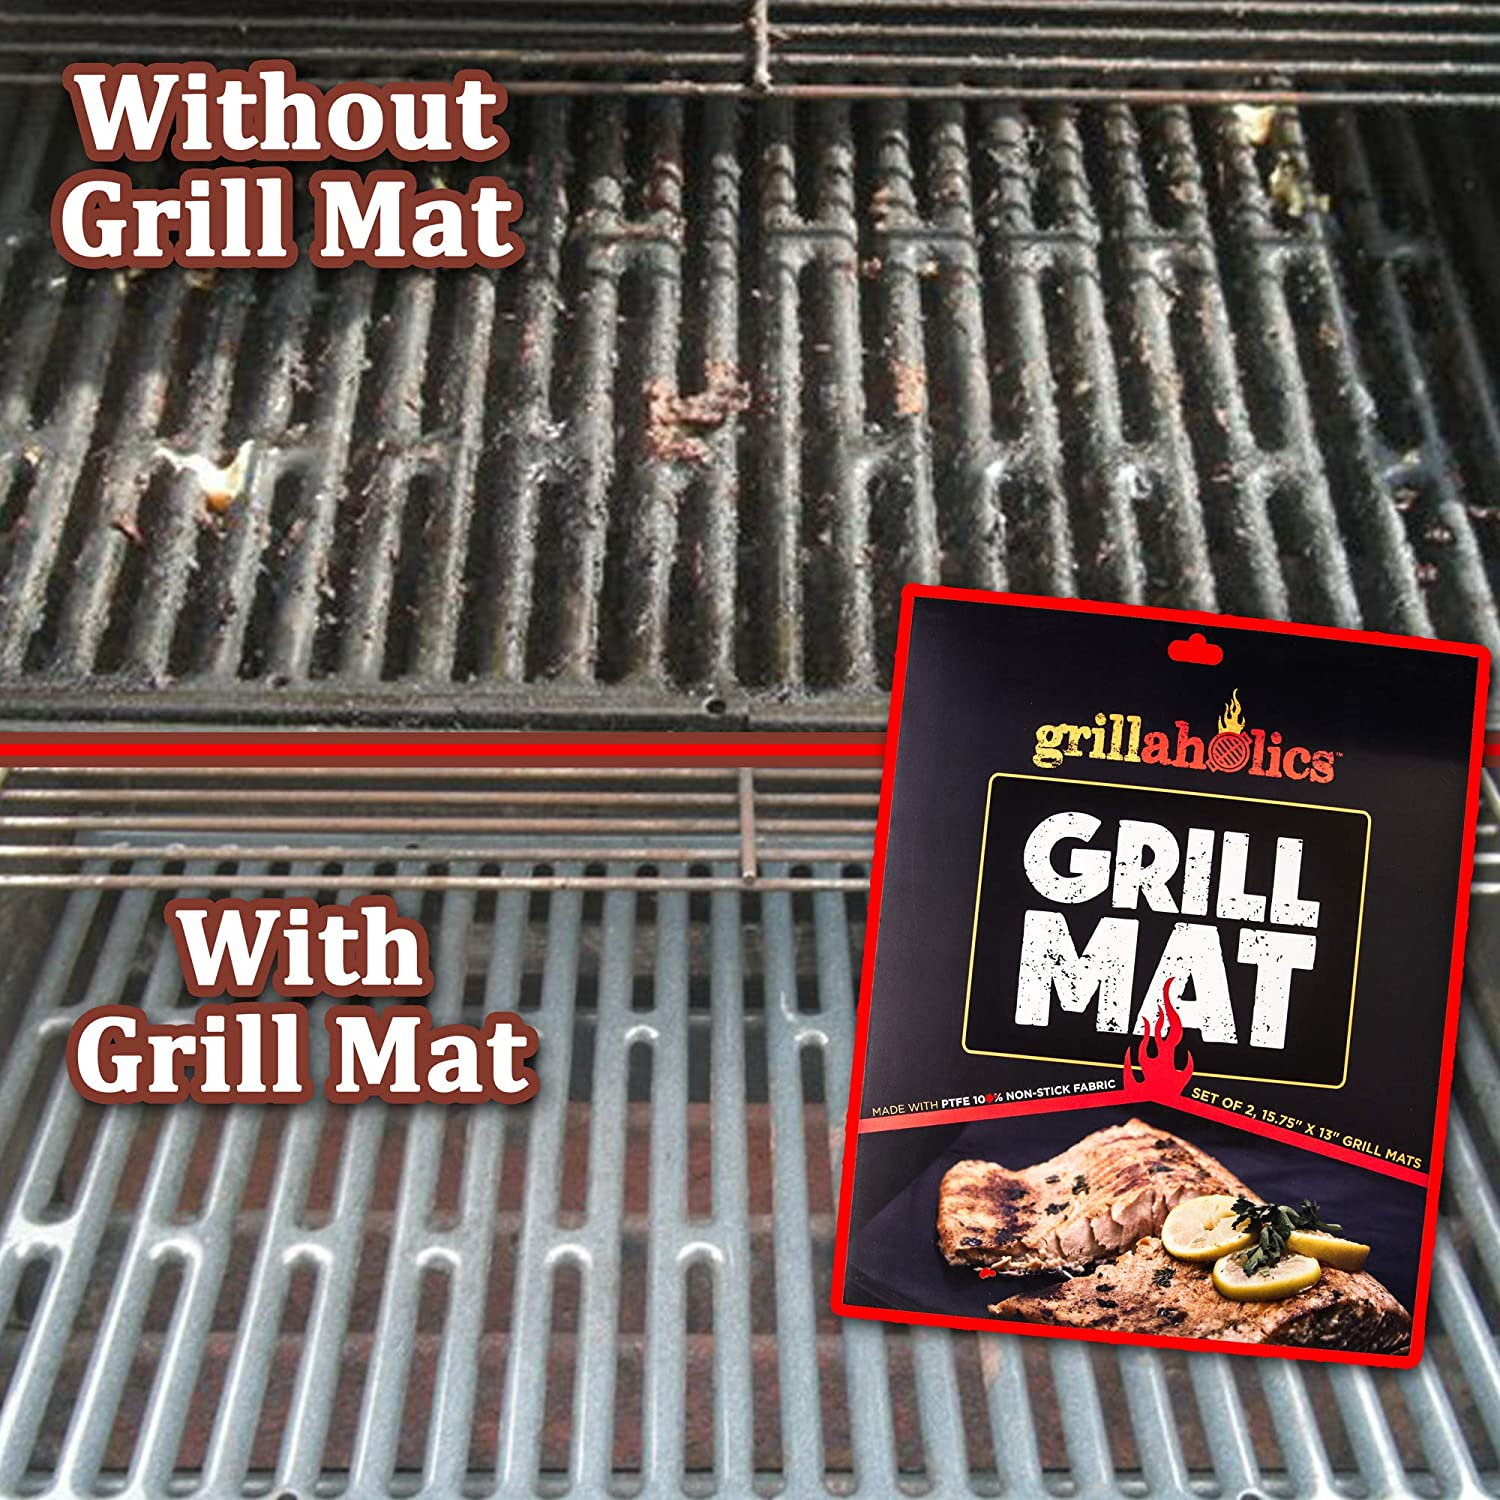 Grillaholics Grill Mat - Set of 3 - Nonstick BBQ Grilling Accessories - 15.75 x 13 Inch : Garden & Outdoor